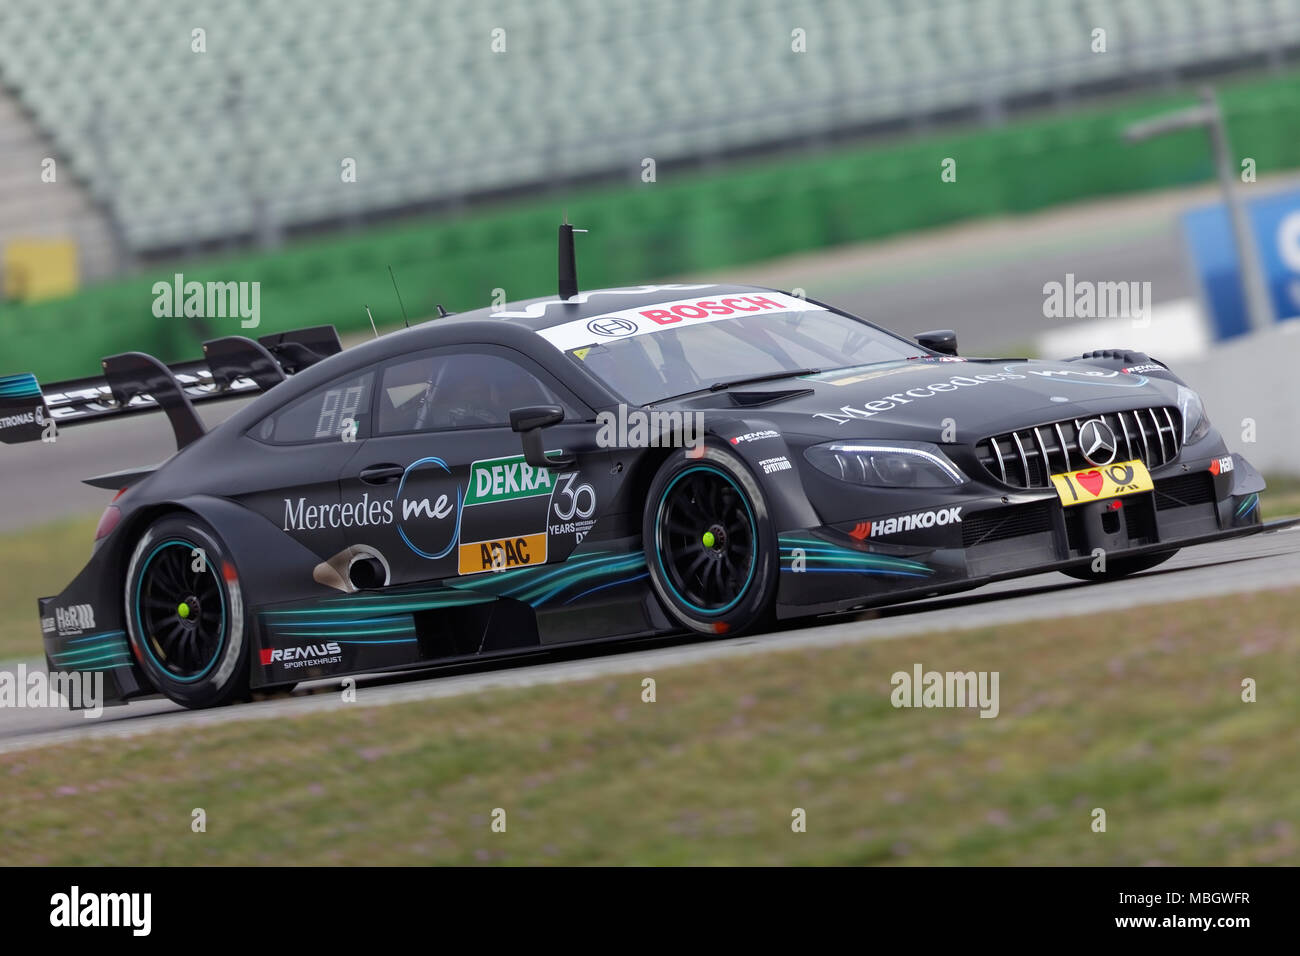 motorsport race track hockenheimring stock photos. Black Bedroom Furniture Sets. Home Design Ideas